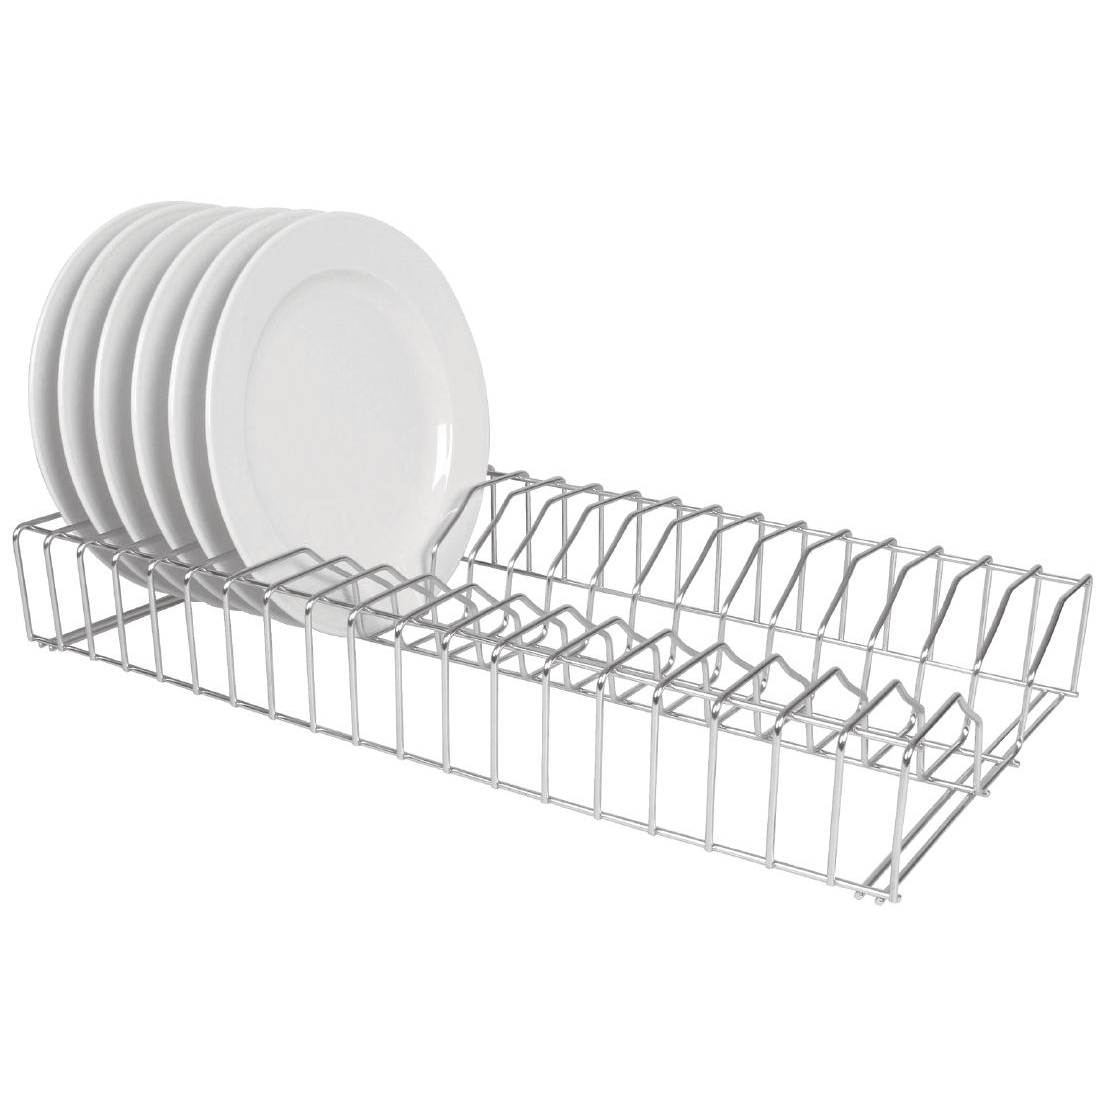 sc 1 st  Leaders Paper Merchants & Vogue Stainless Steel Plate Racks